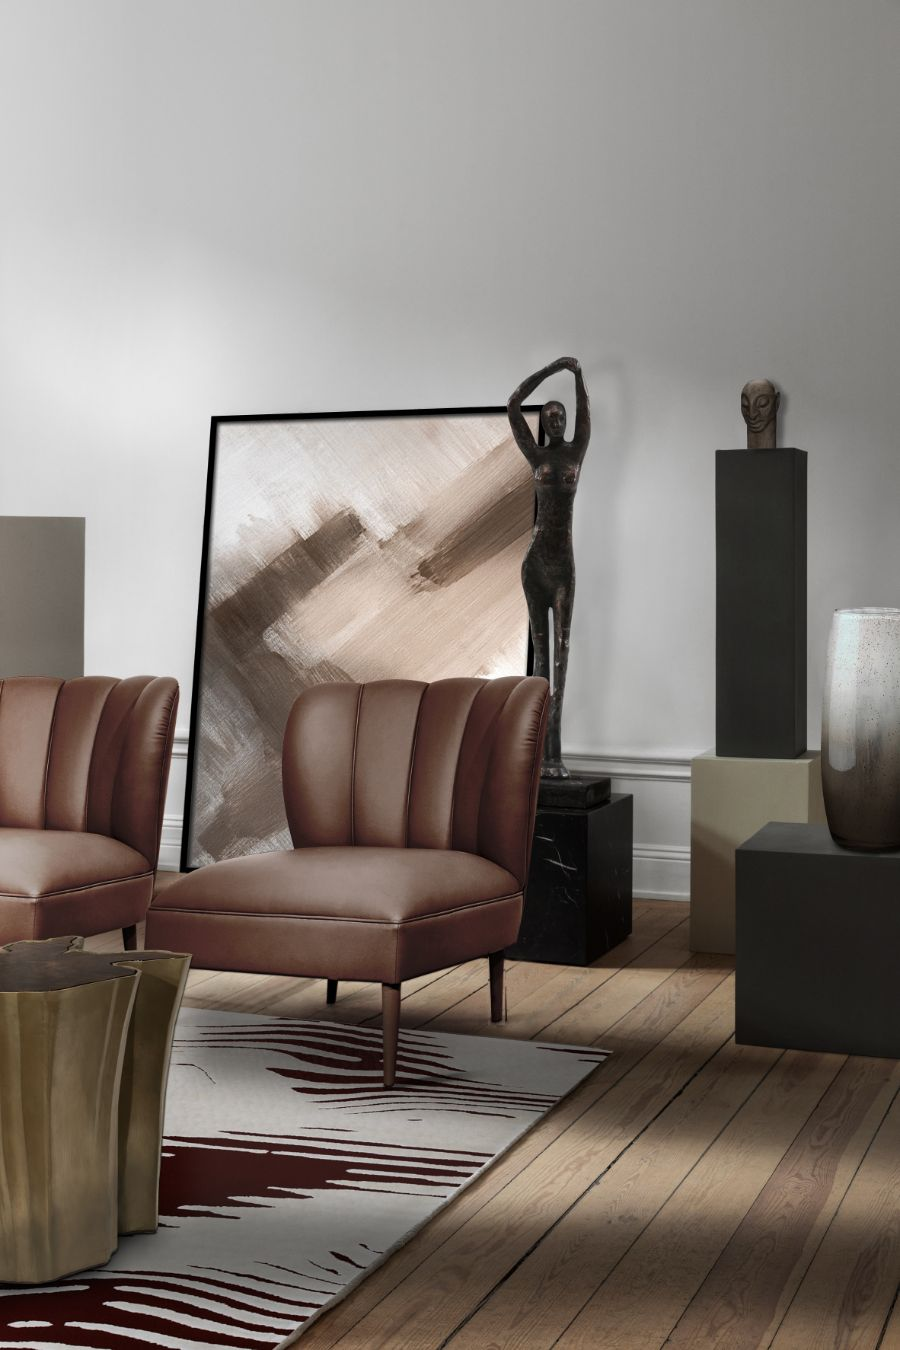 20 Armchairs to Bring The Ultimate Intense Style into Your Home armchairs 23 Armchairs to Bring The Ultimate Intense Style into Your Home Modern Designed Armchairs Top 20 of Timeless Designs for Every Decor 2